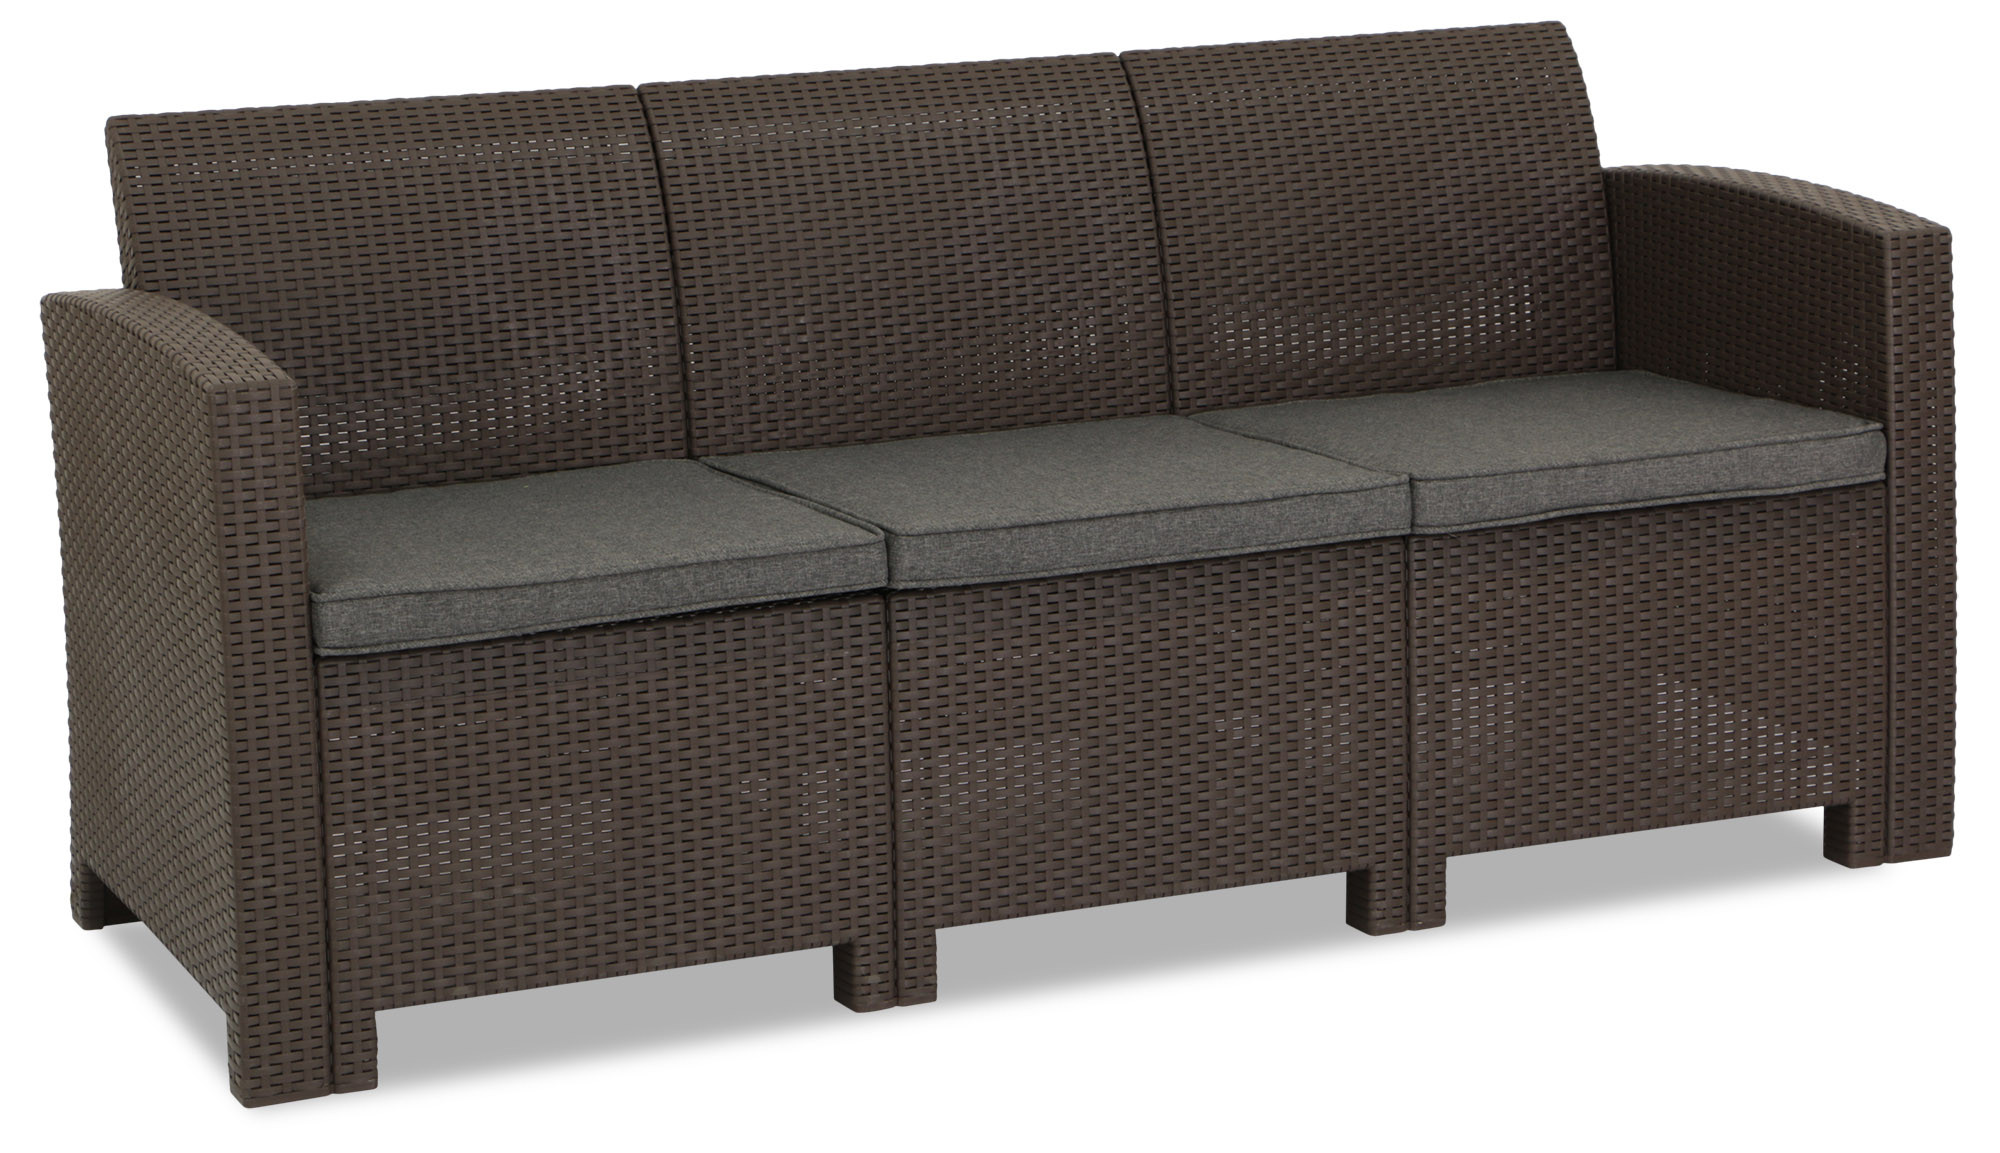 Nina 3 Seater Sofa Brown